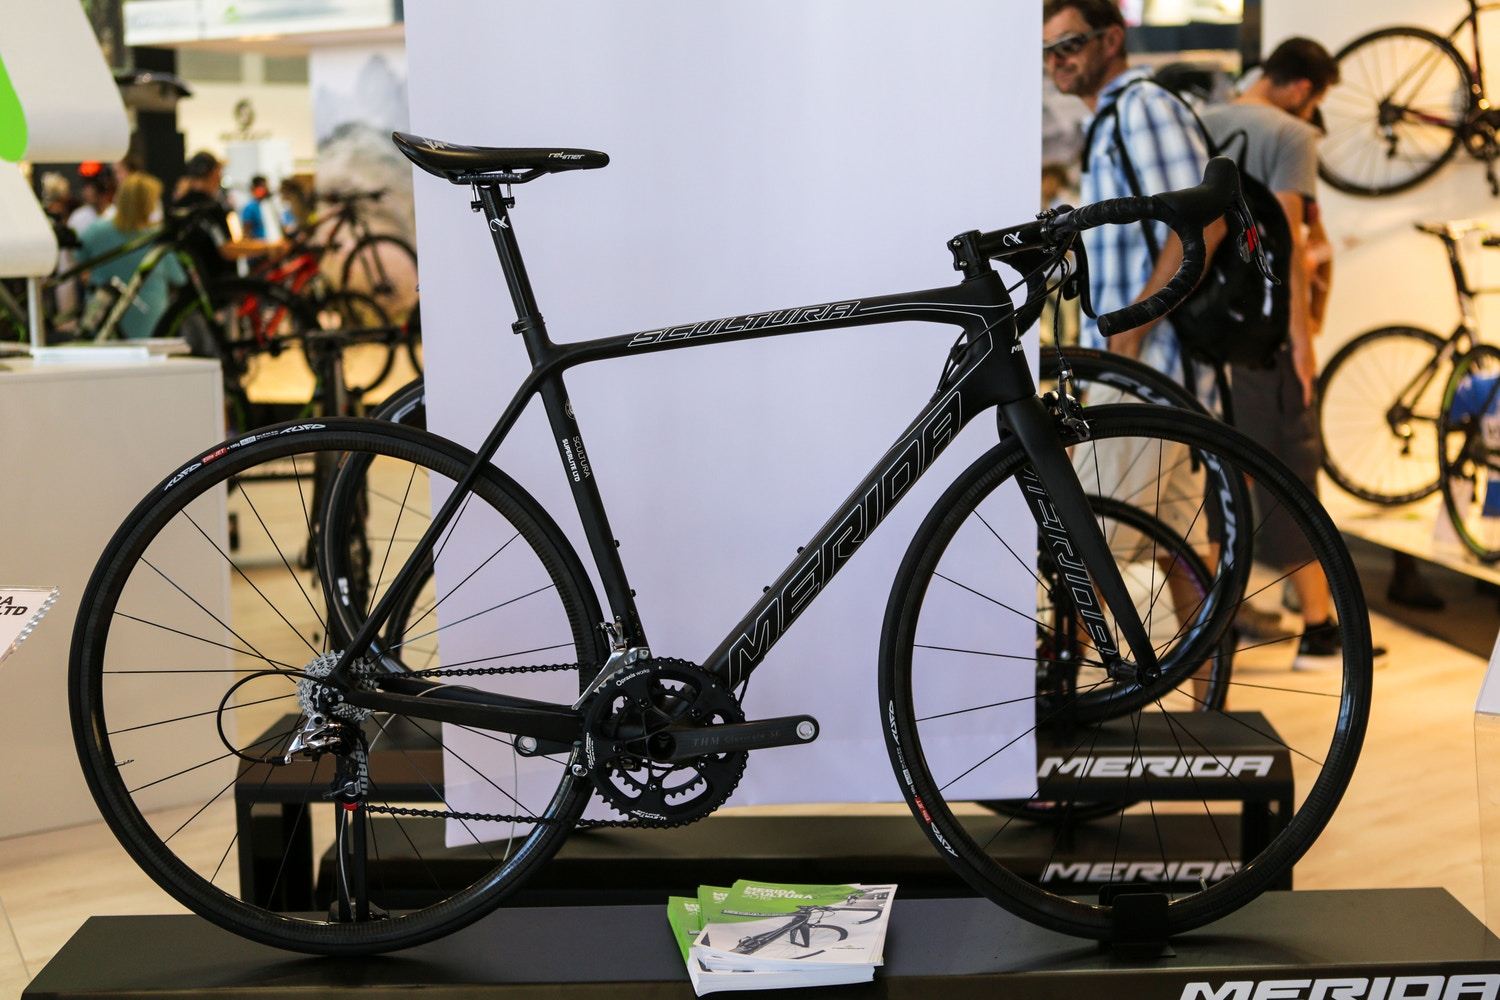 Merida Road Bikes 2016 - Leichtbau in Serie